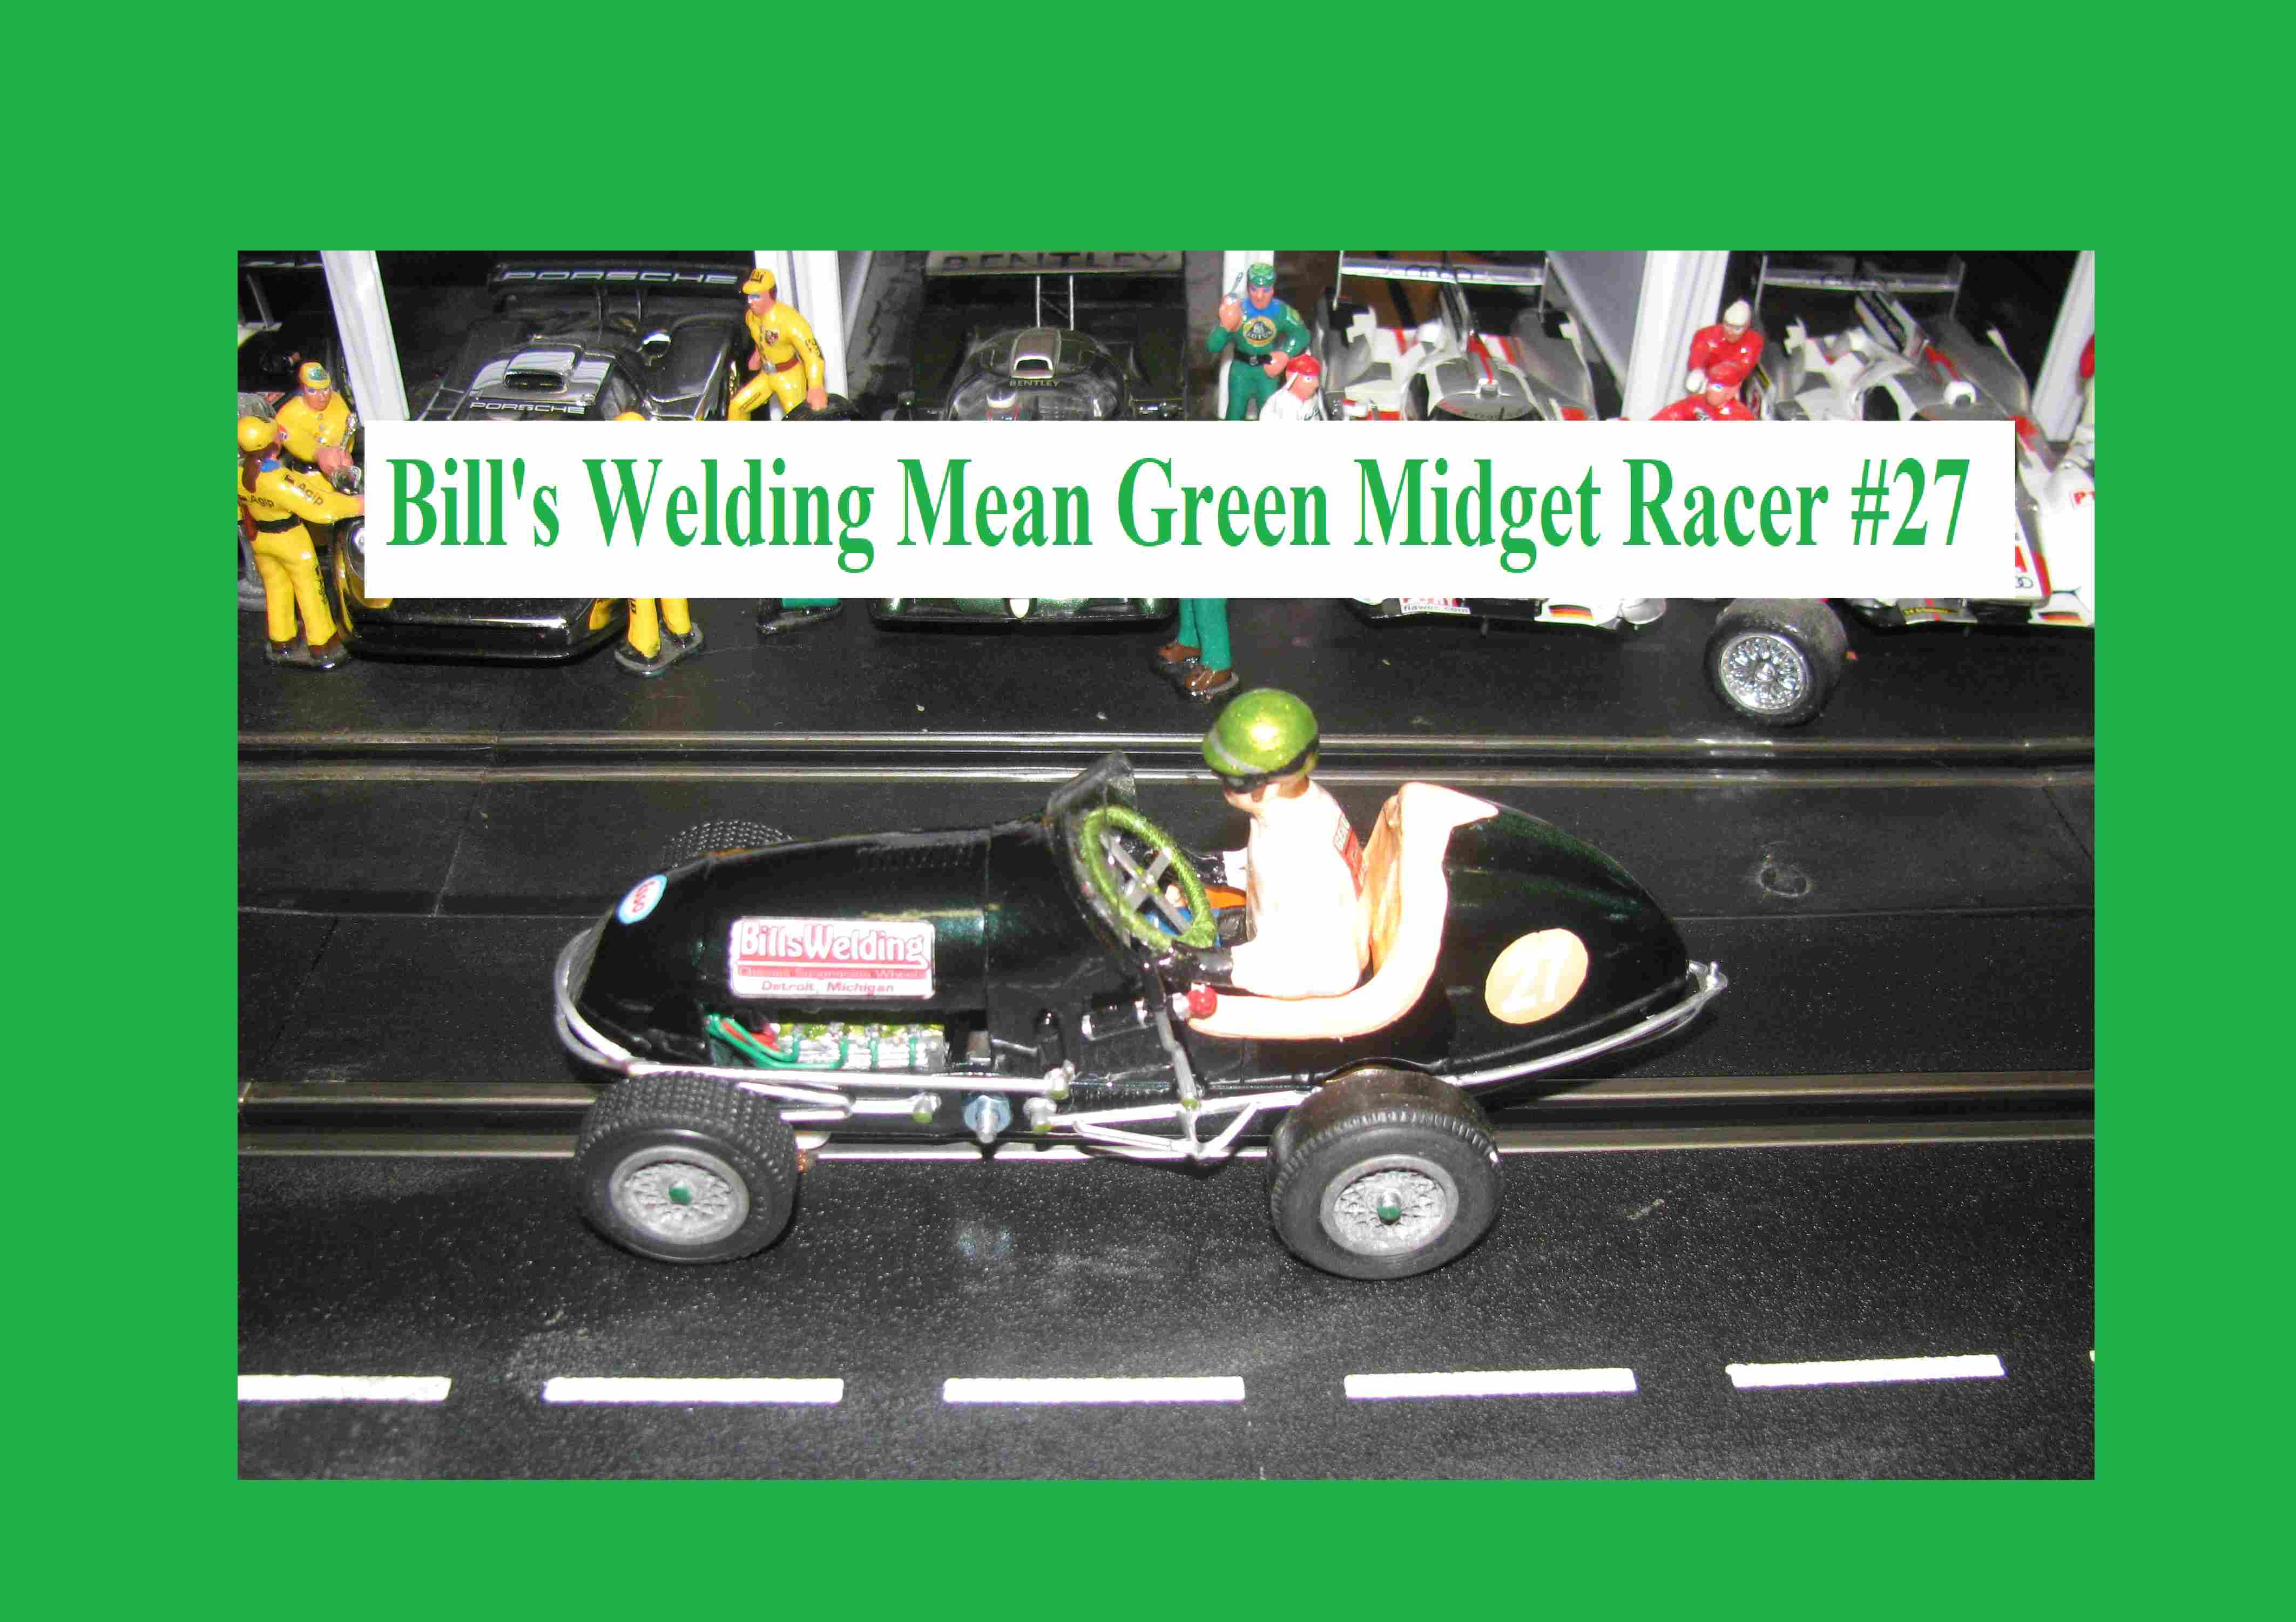 * Winter is coming SALE * Monogram Midget Racer Mean Green Racing Special Slot Car 1/24 Scale (Green Metallic) Car #27